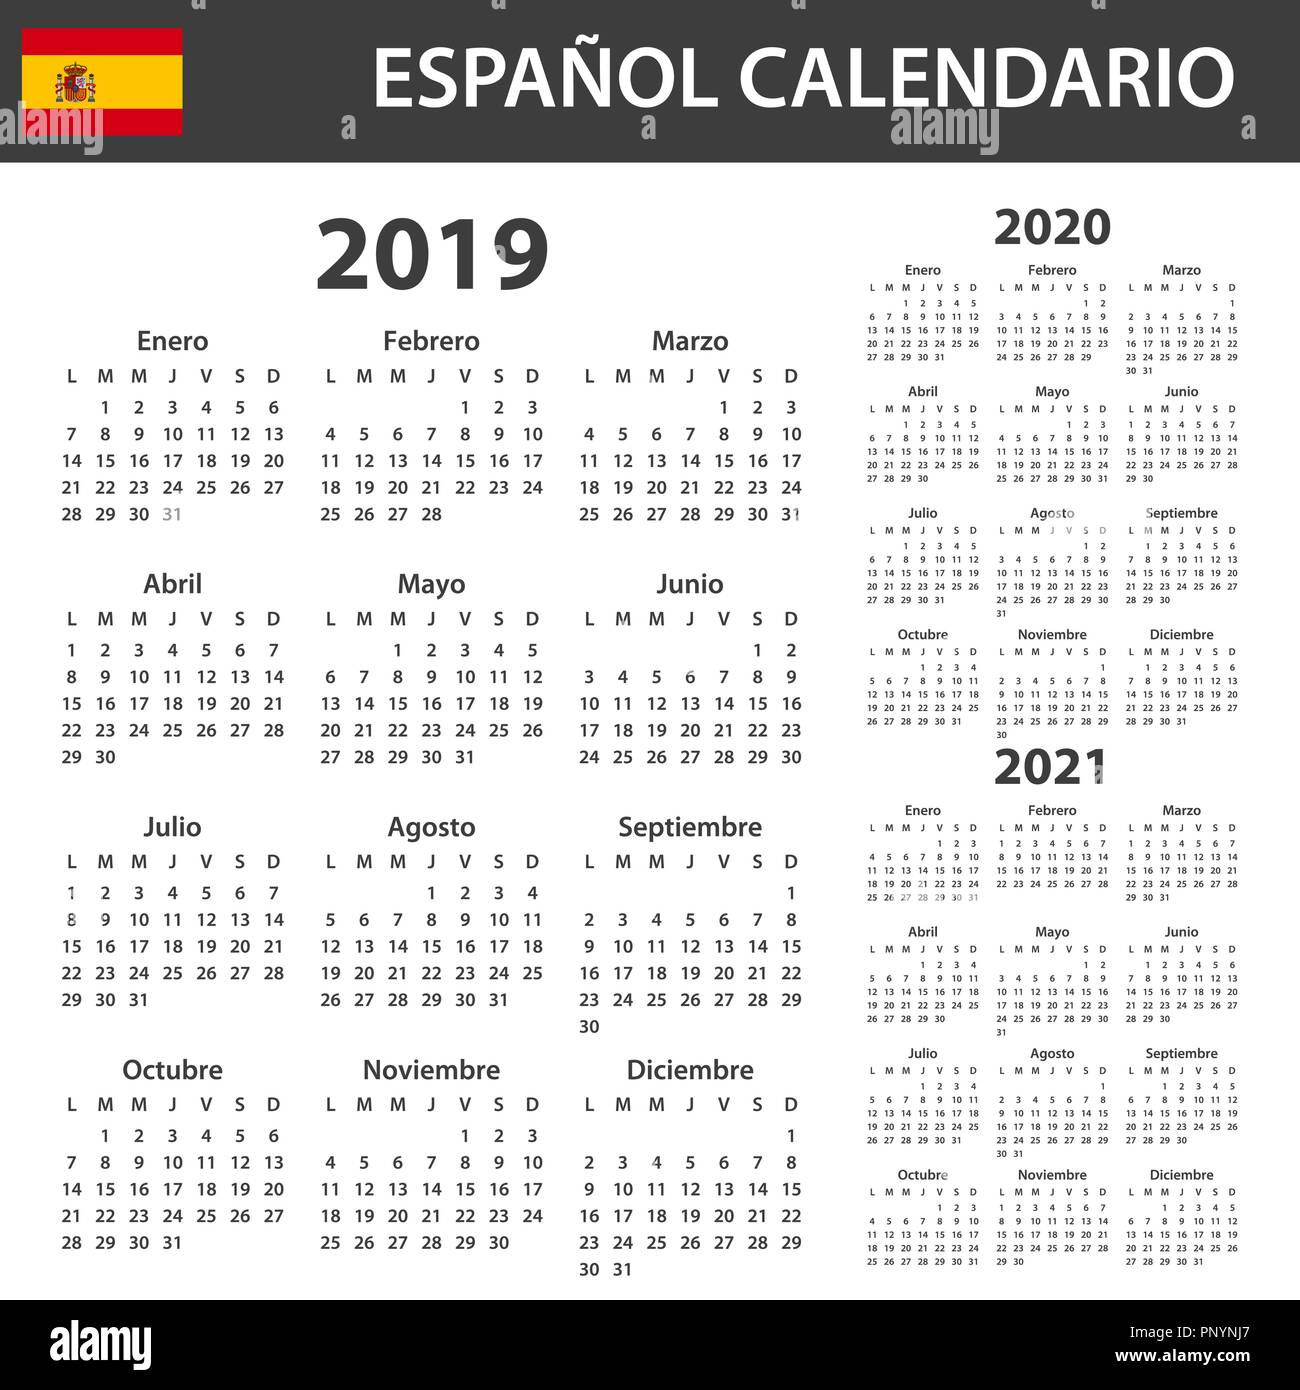 Spanish Calendar For 2019 2020 And 2021 Scheduler Agenda Or Diary